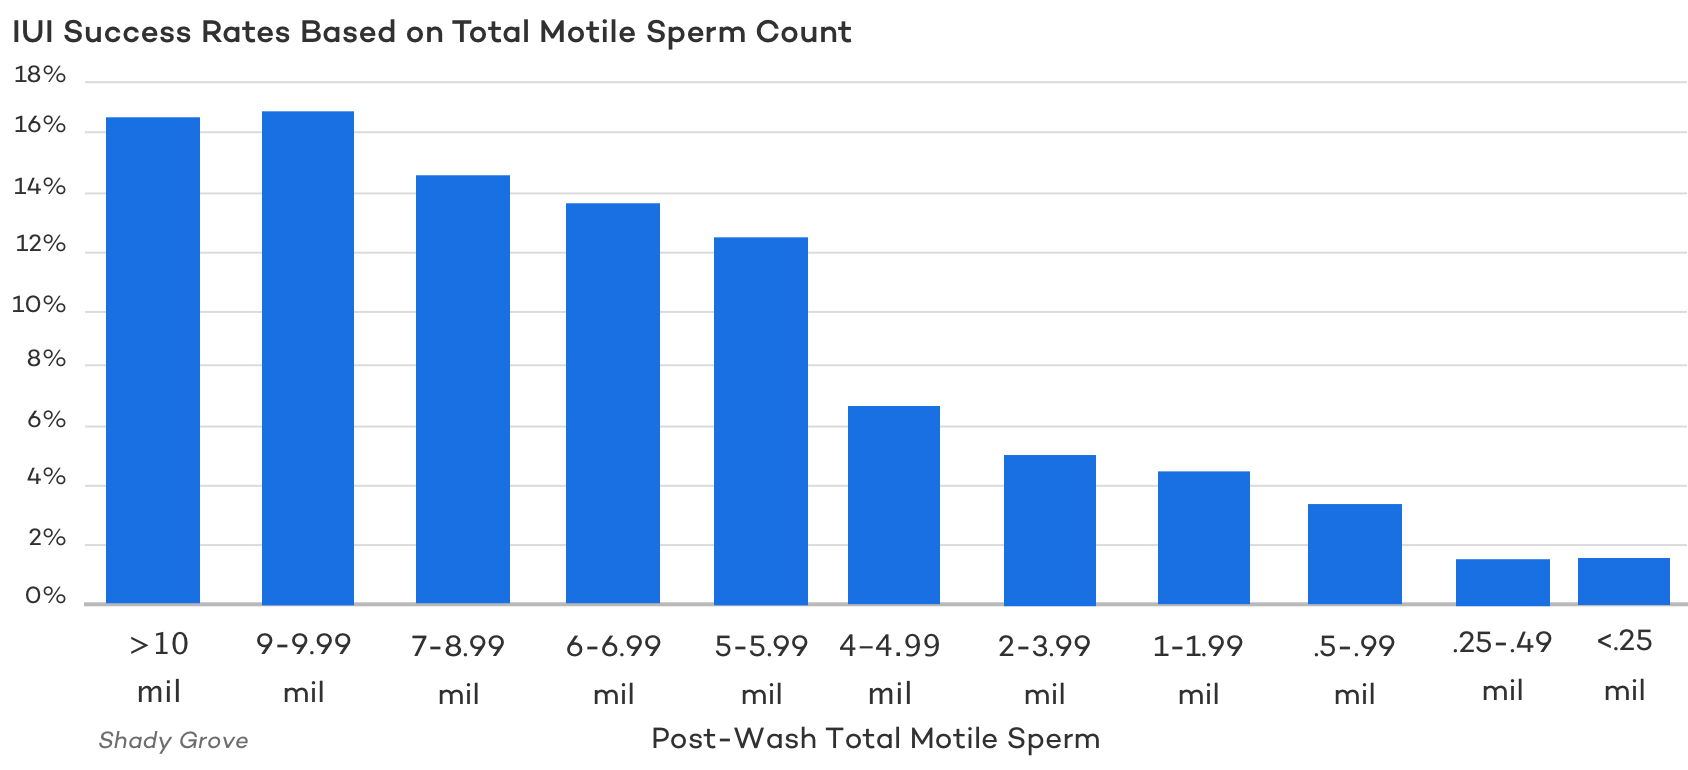 IUI Success Rates Based on Total Motile Sperm Count